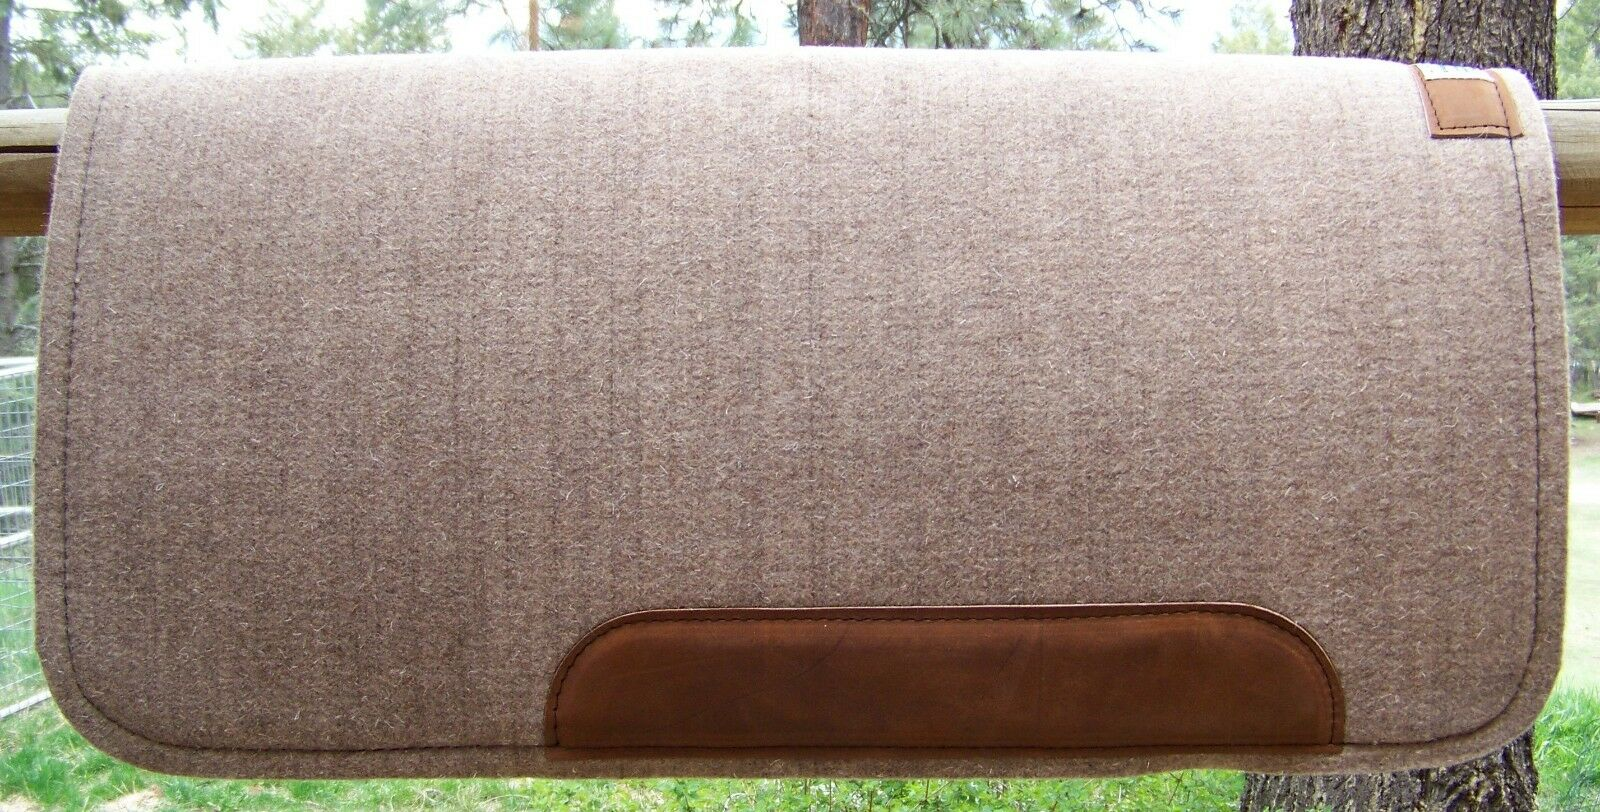 Pad  Cowboy Tan 12x32x32 by Diamond Wool